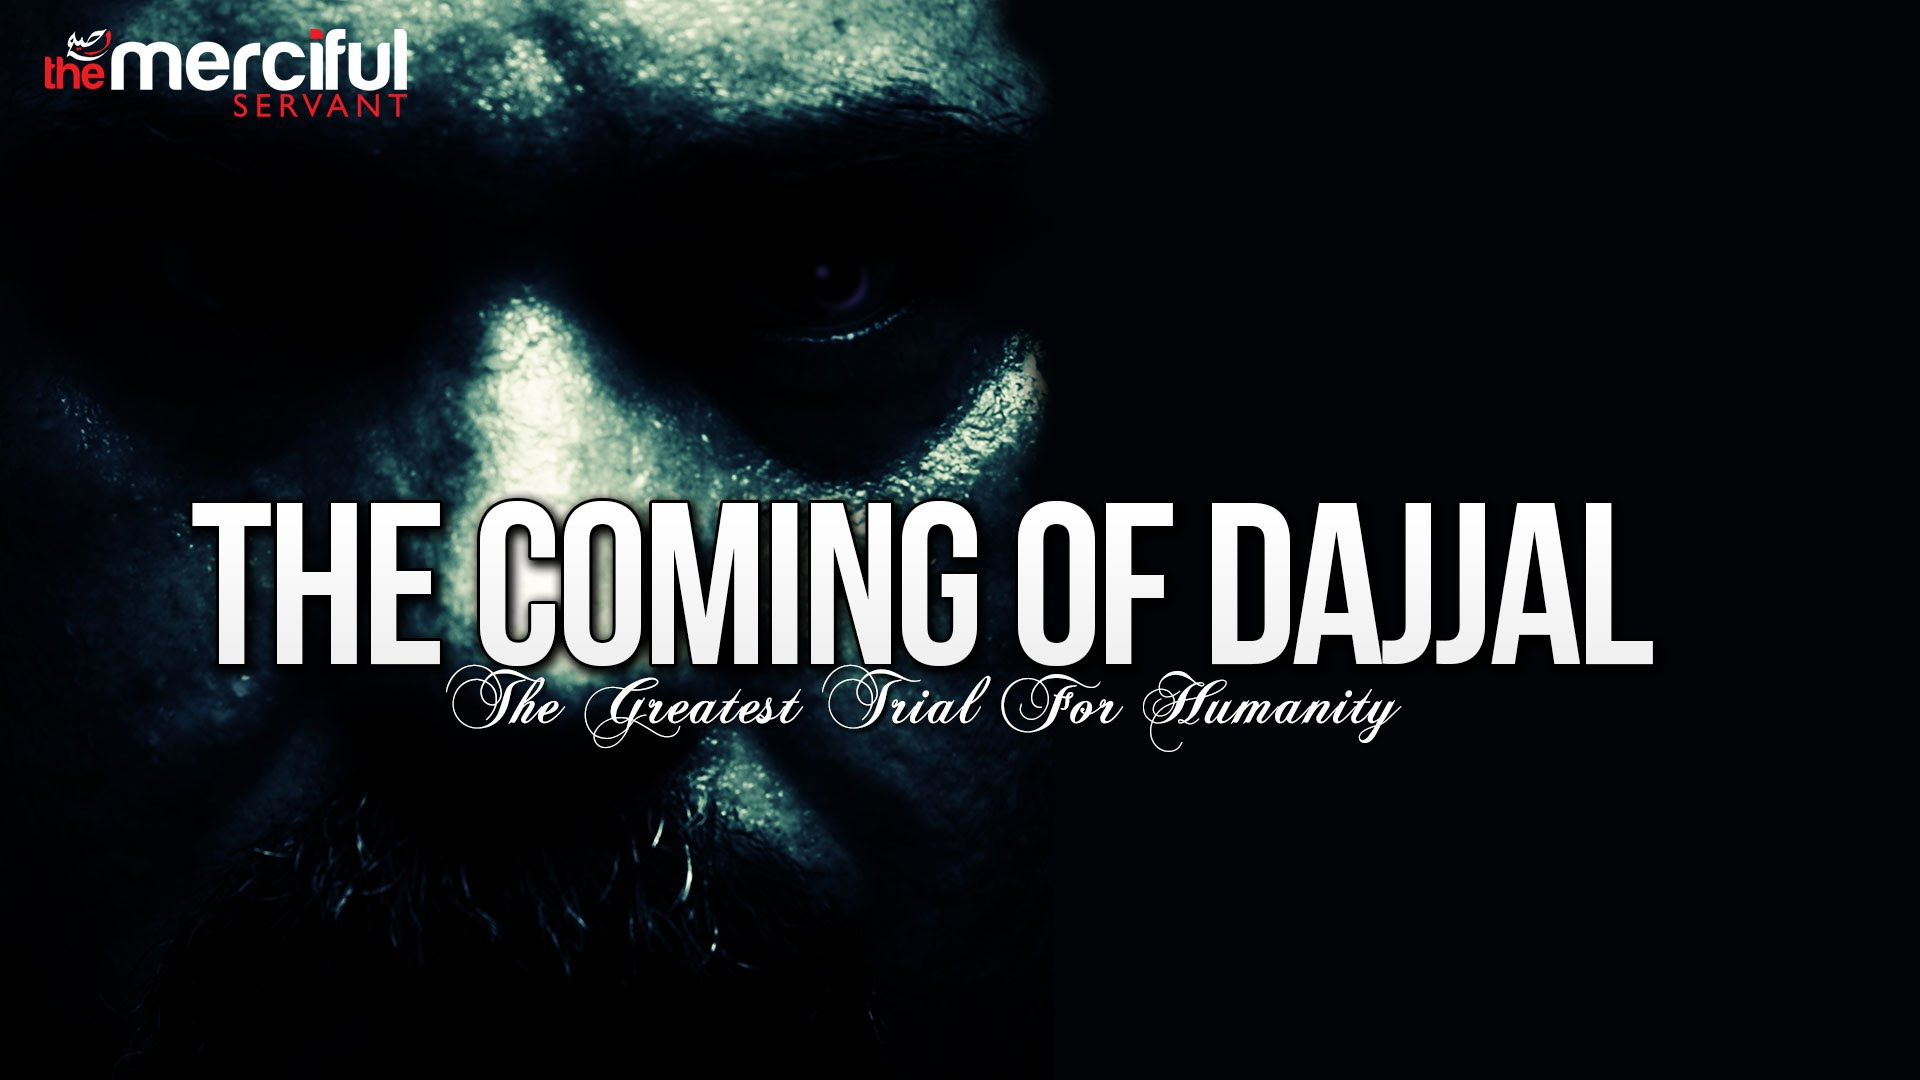 The Coming Of Dajjal - The Greatest Trial - islamio